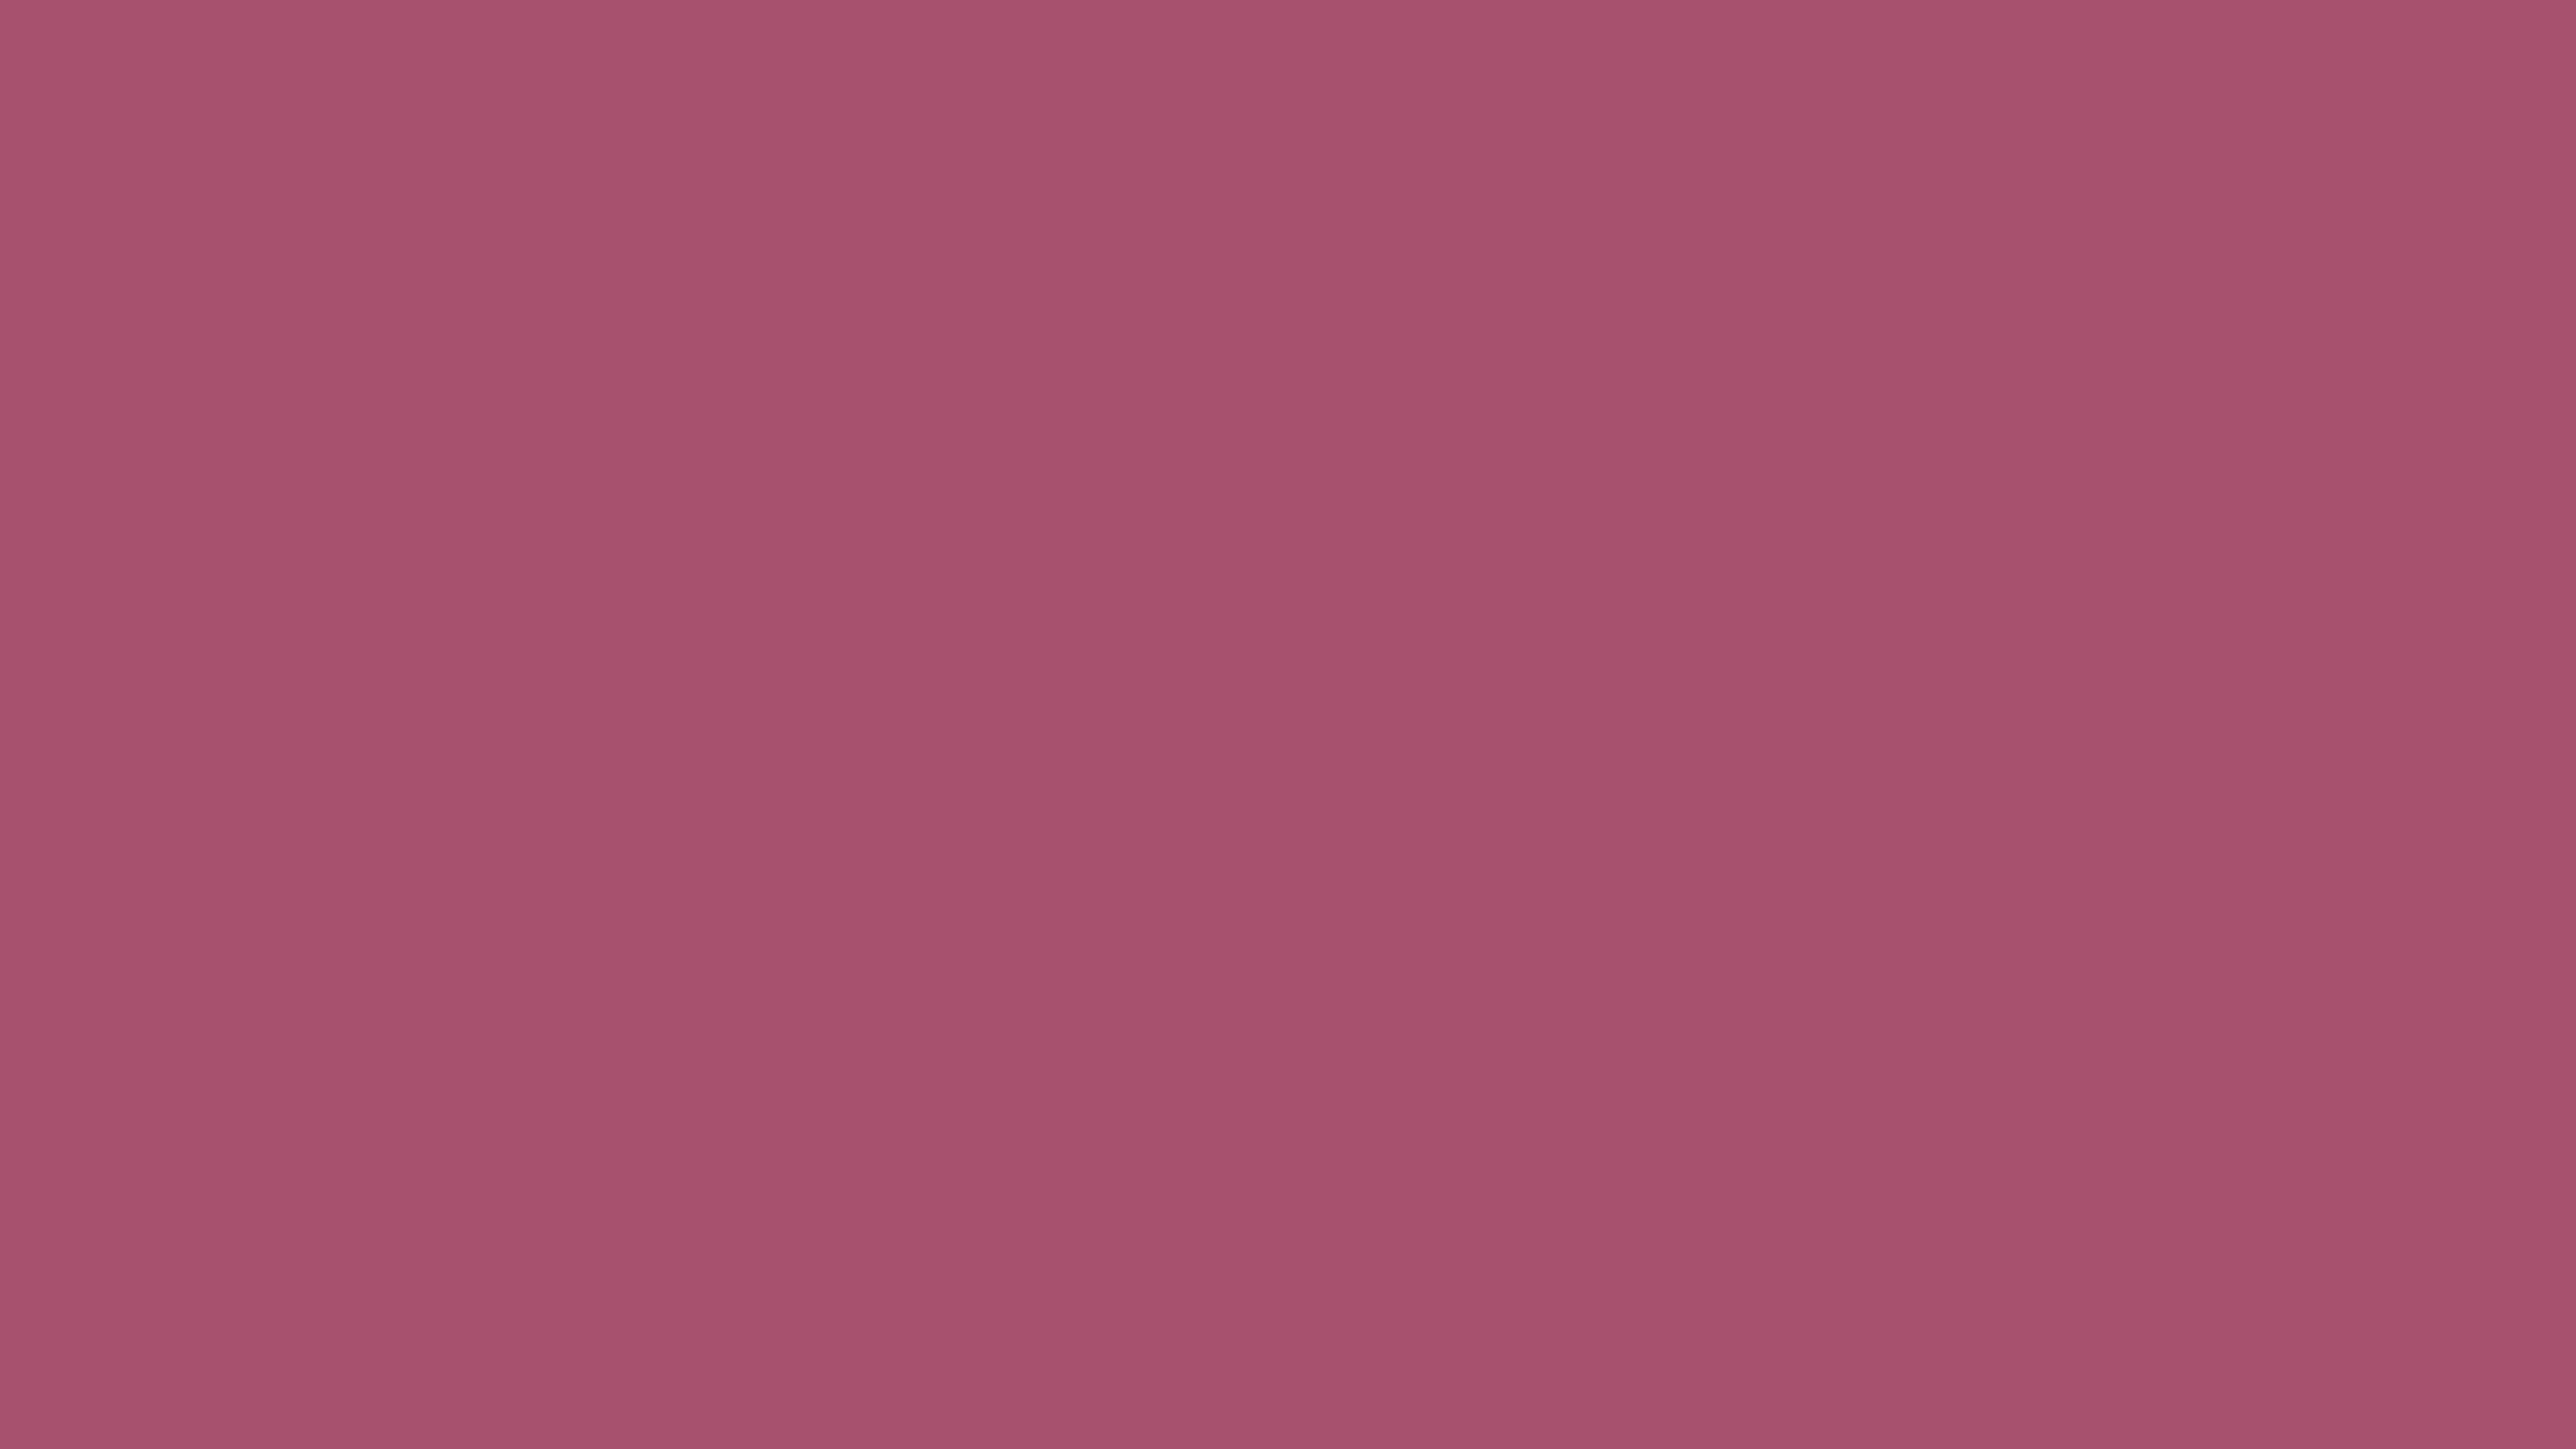 3840x2160 China Rose Solid Color Background